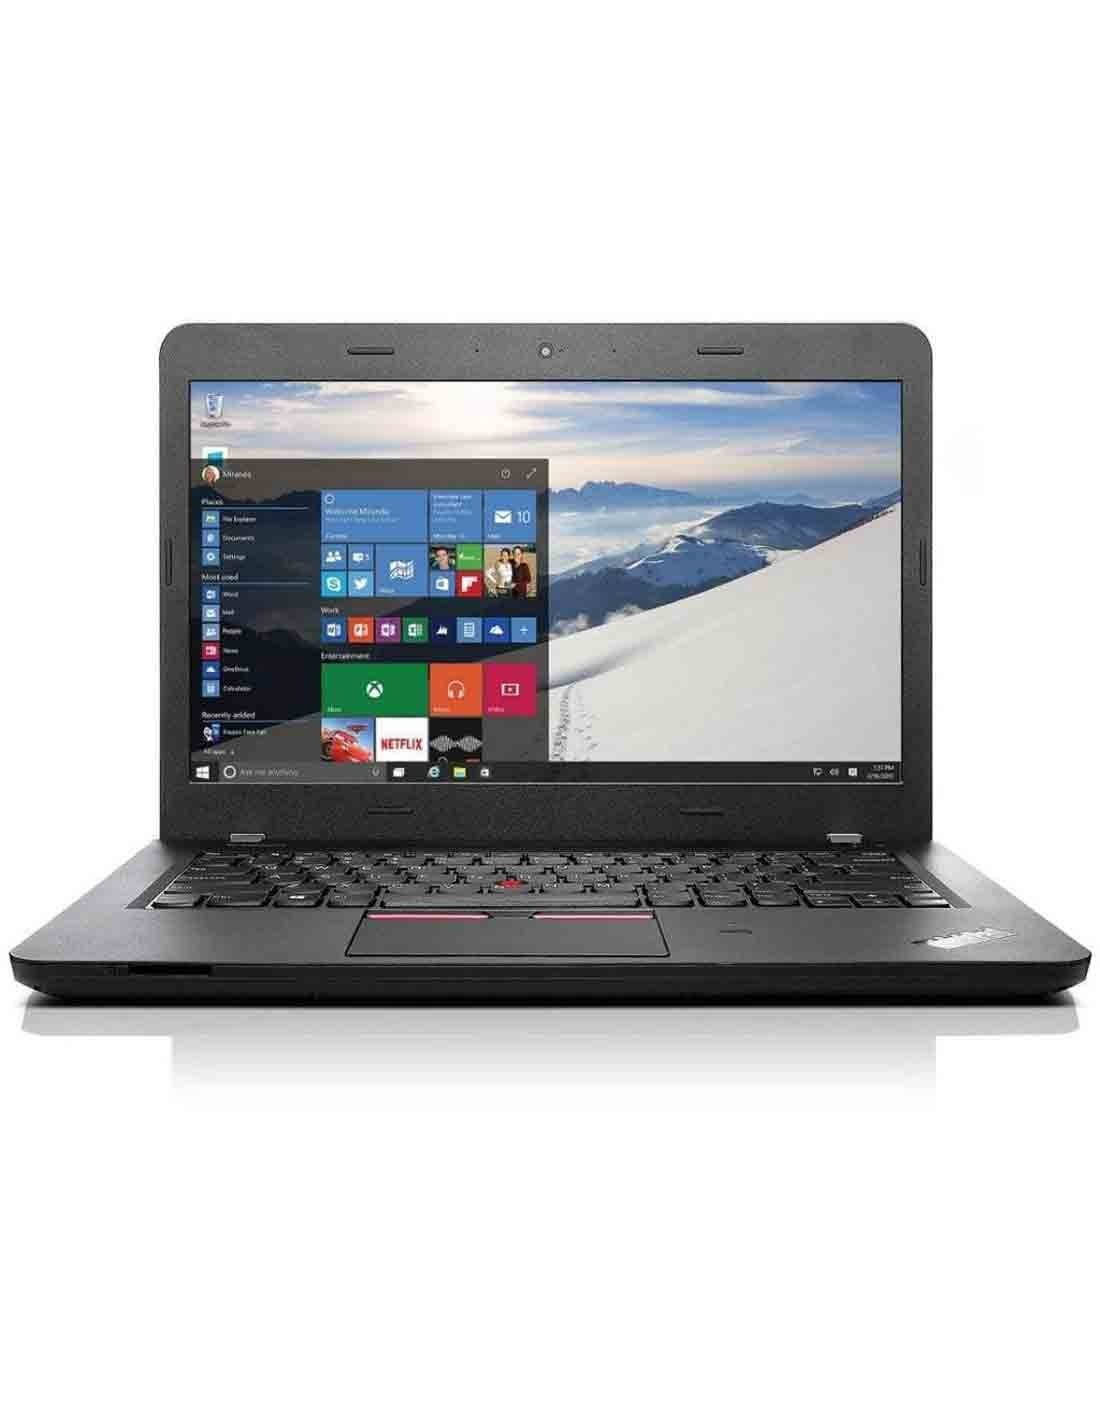 Lenovo Thinkpad E570 which is a Business Laptop, and at a Cheap Price